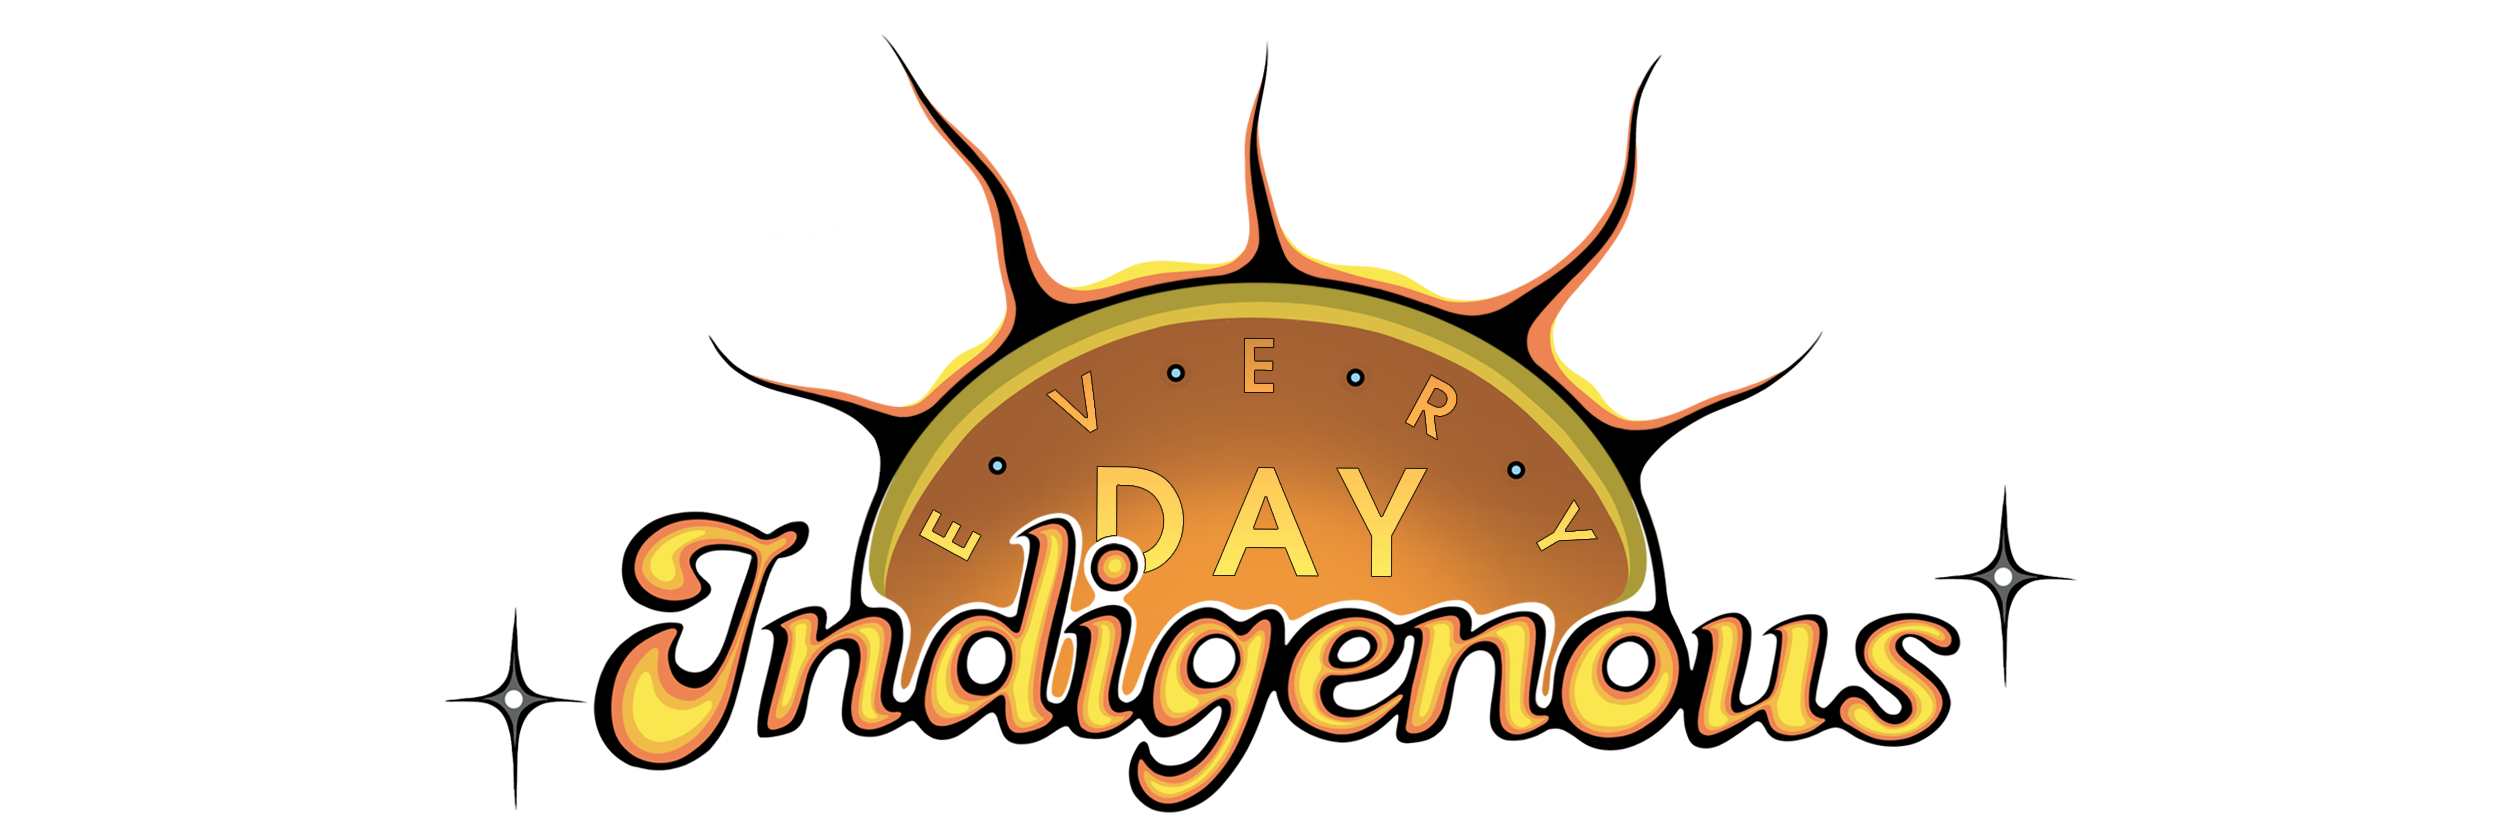 Every Day Indigenous branding image